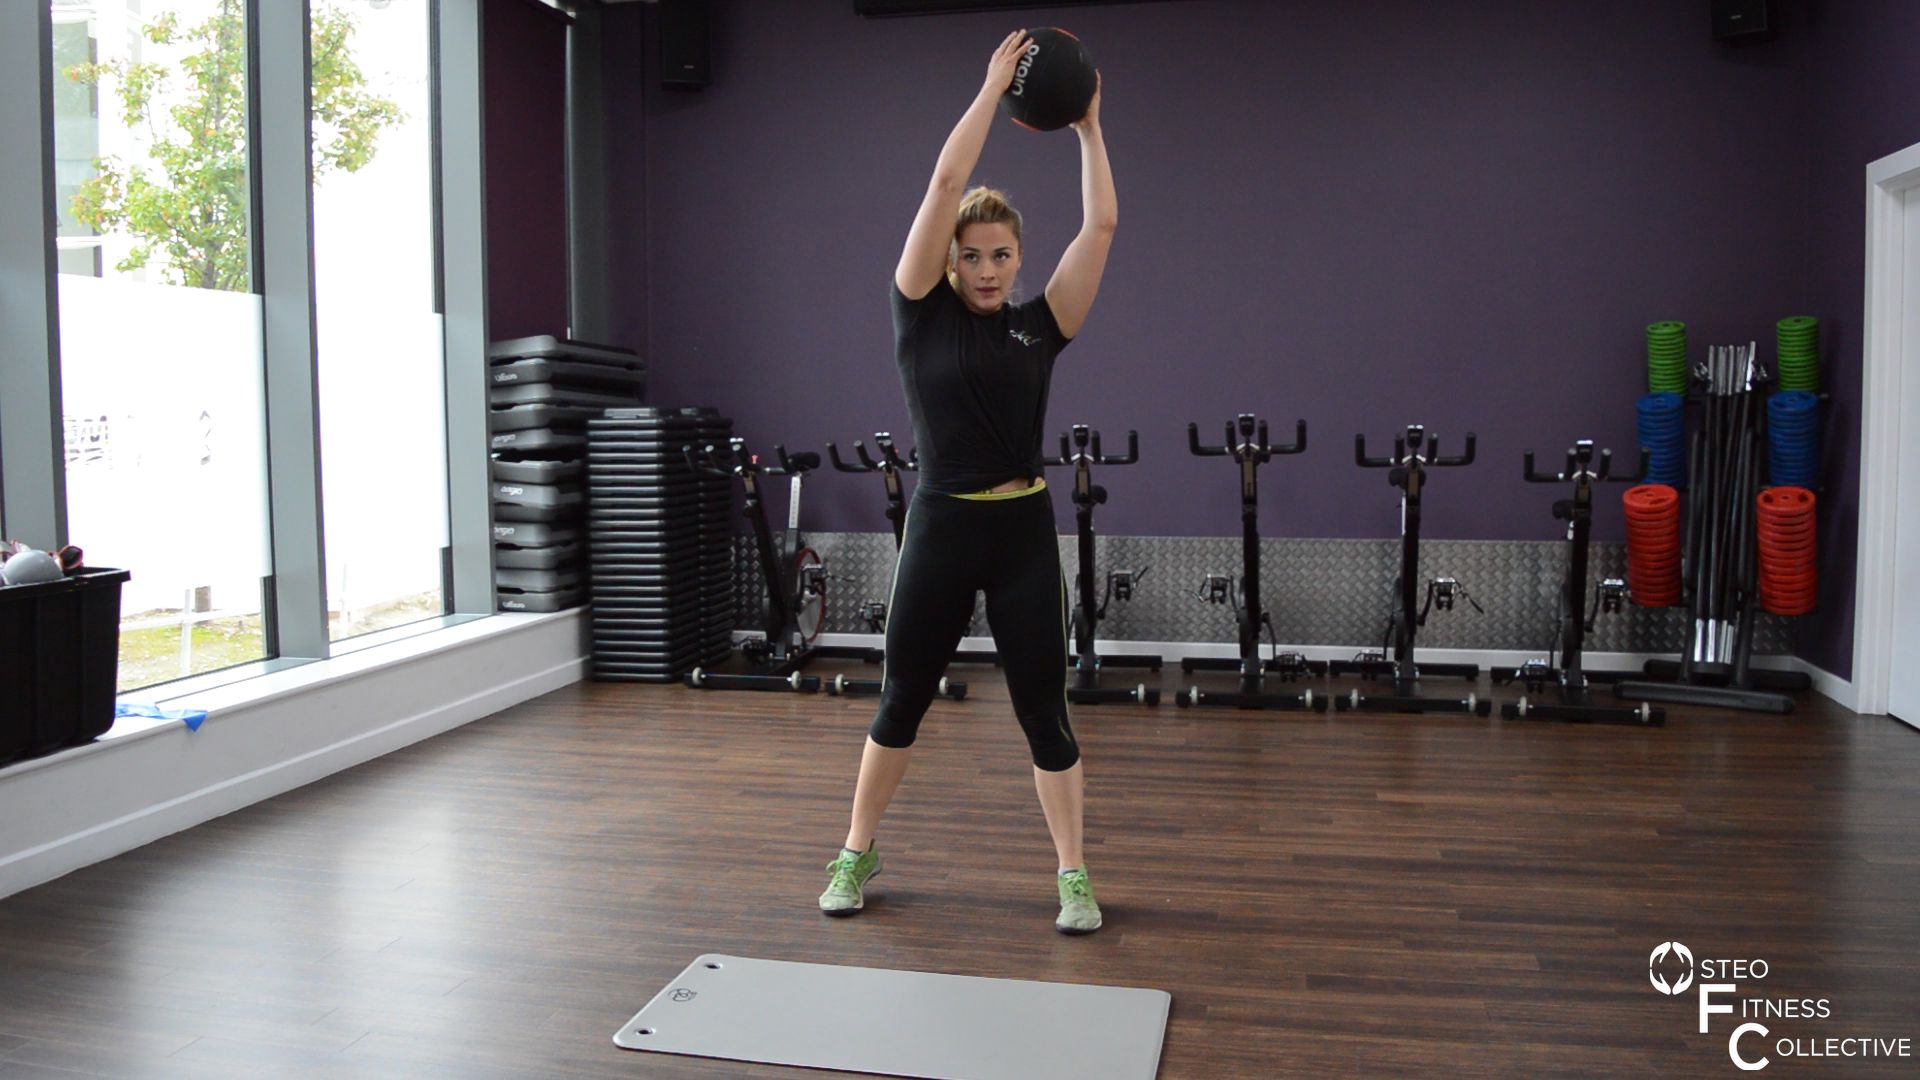 Medicine ball workout, the woodchop